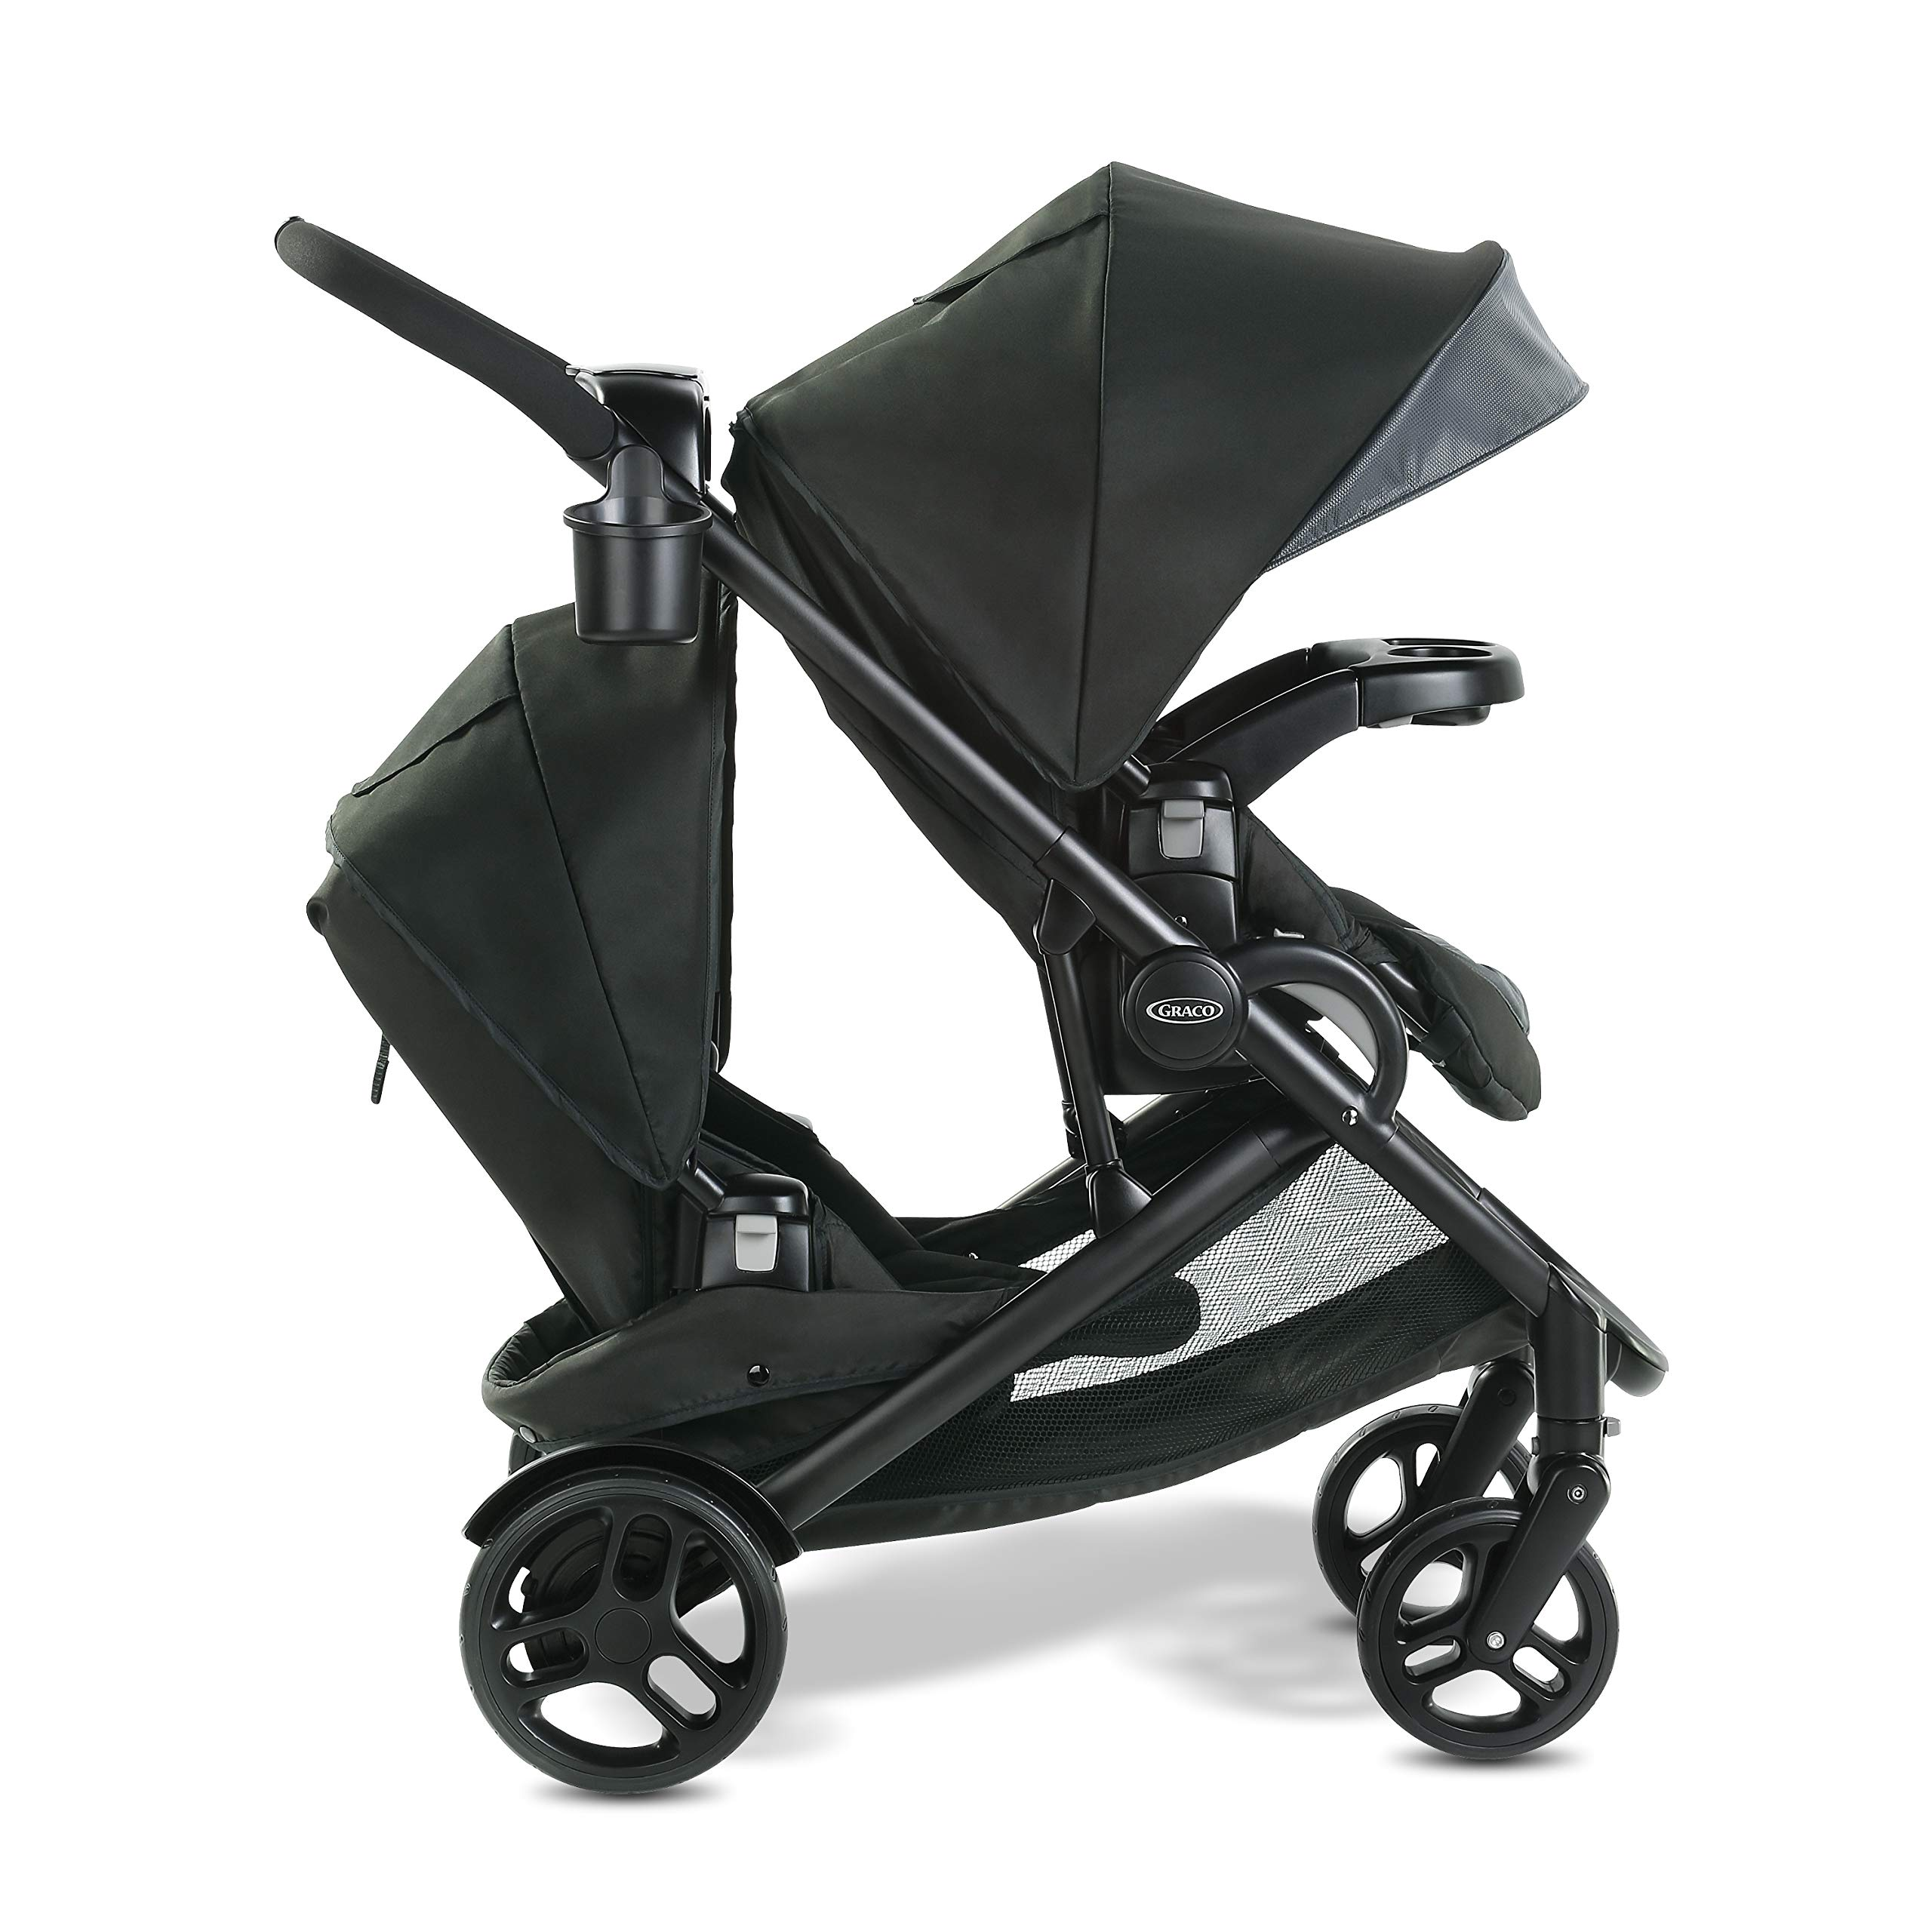 Graco Modes2Grow Double Stroller, Spencer by Graco